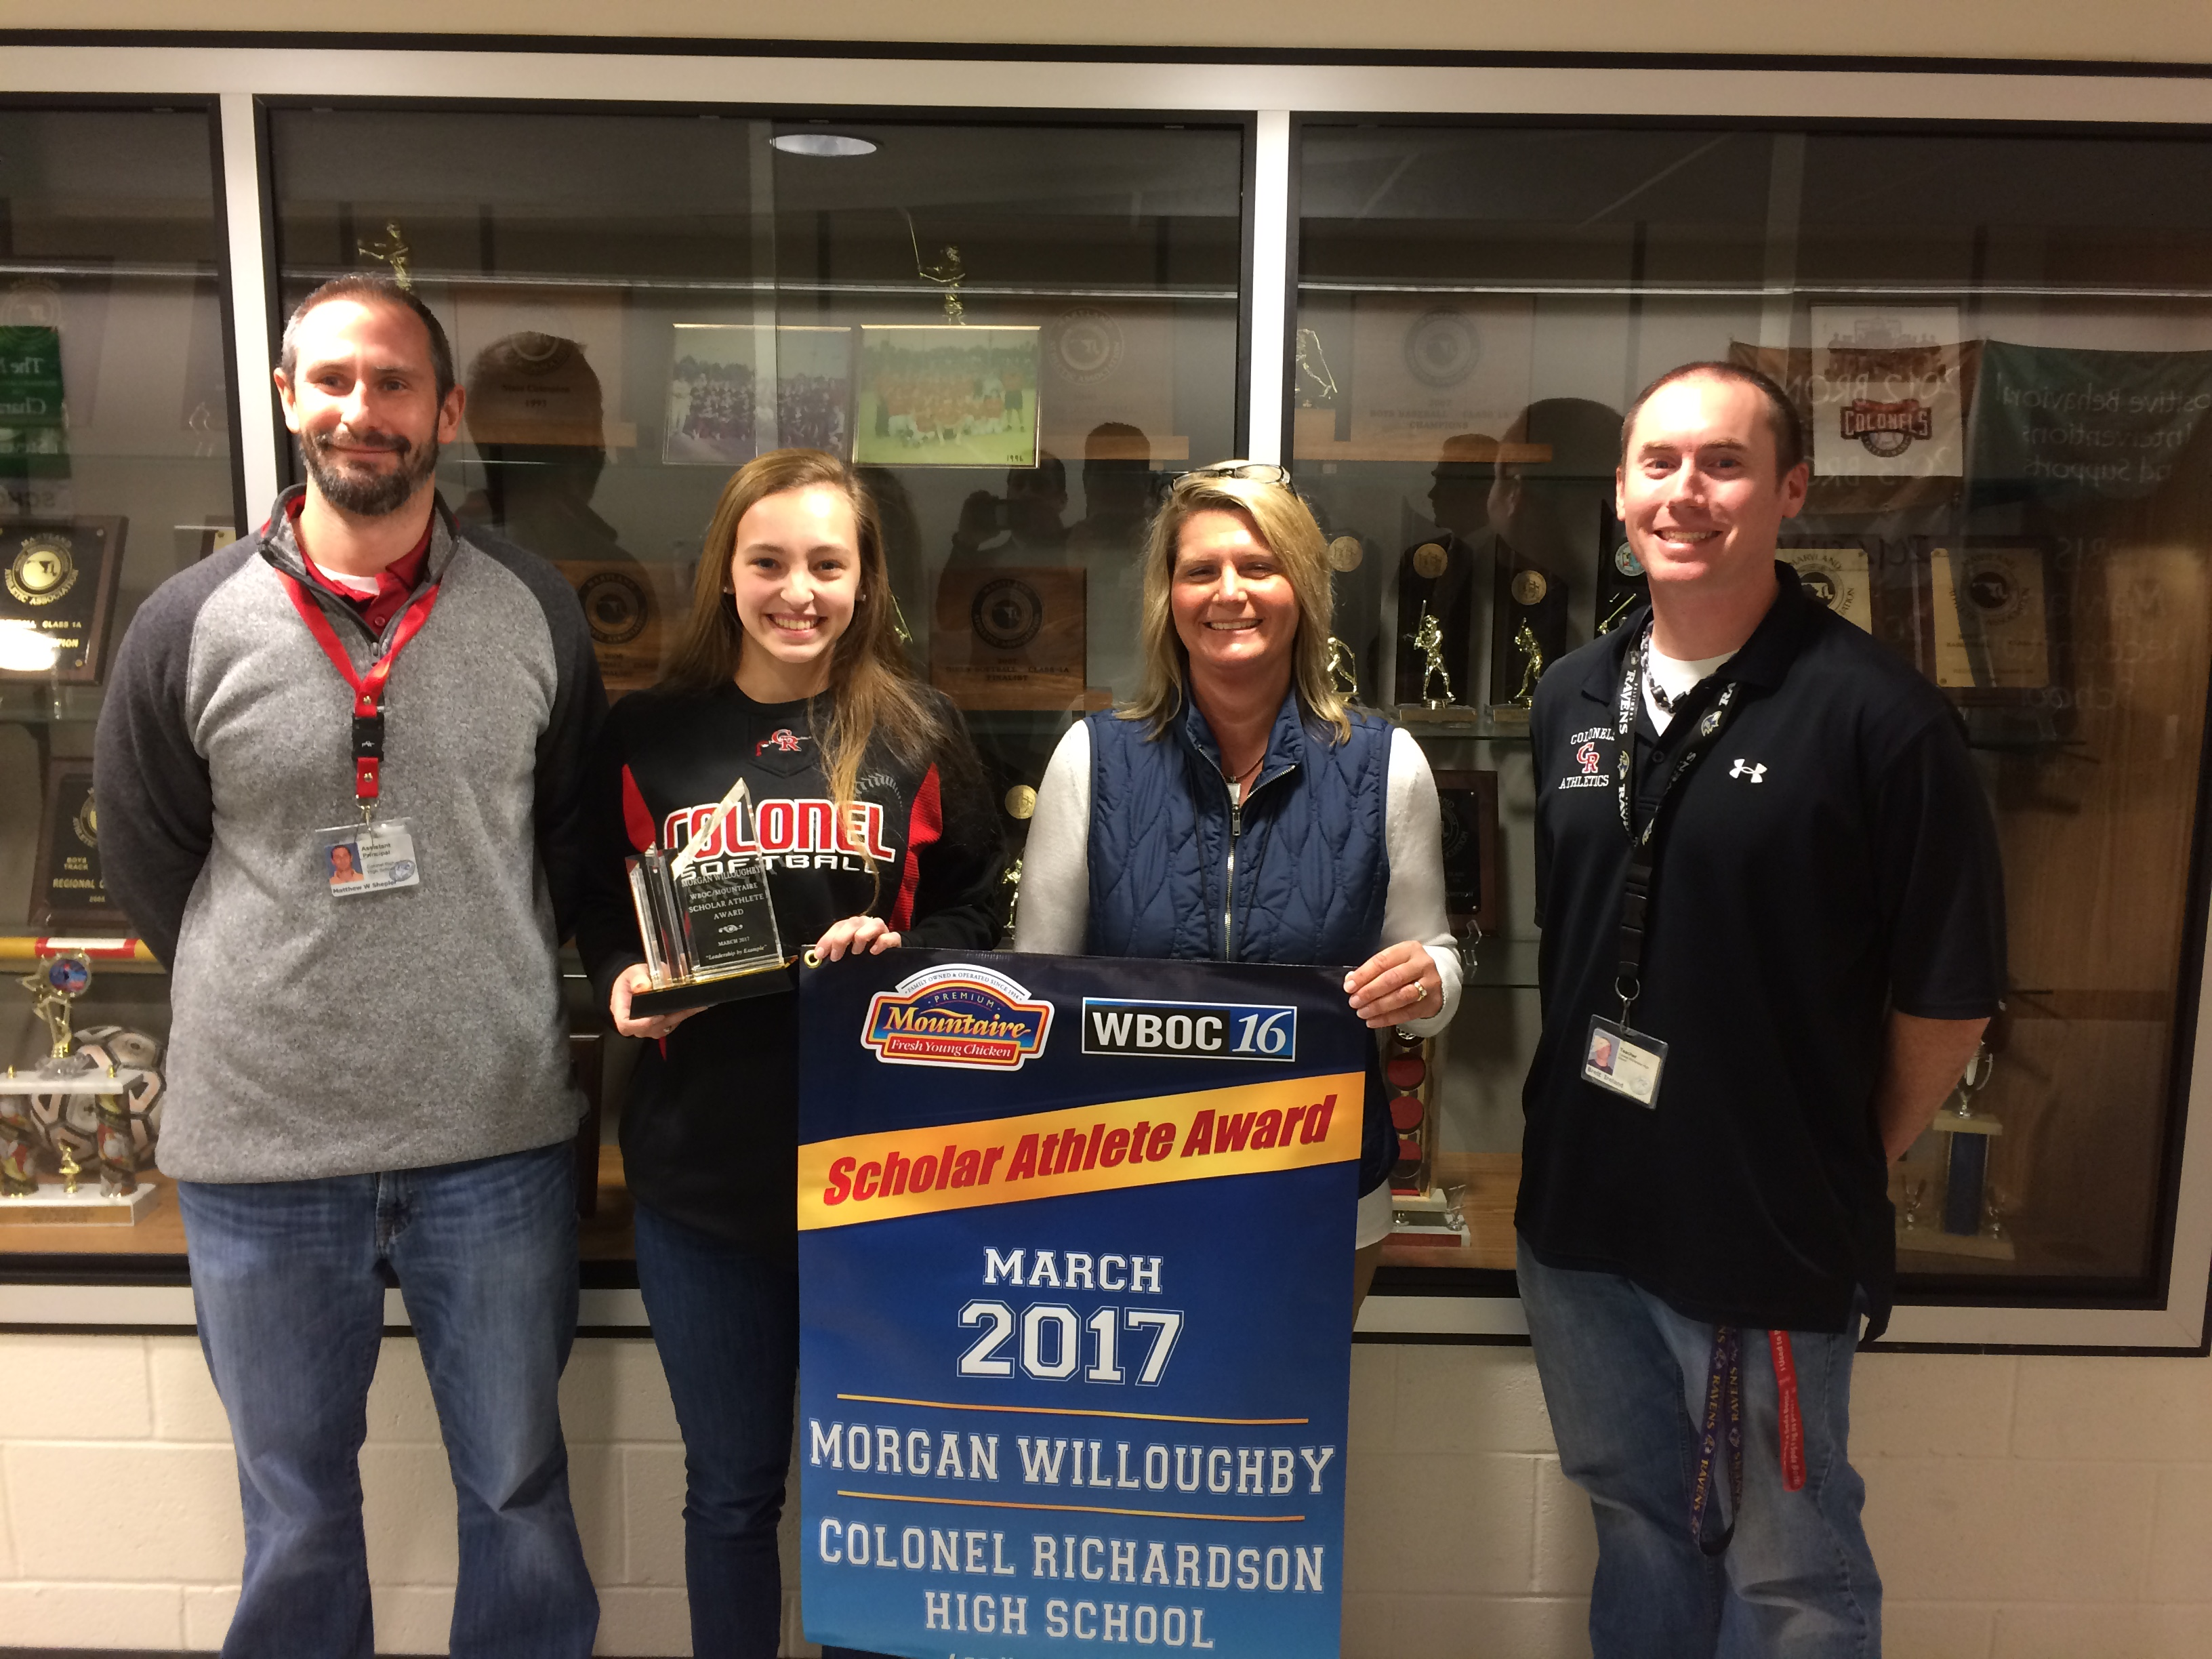 WBOC Mountaire Farms March Scholar Athlete of the Month – Morgan Willoughby  of Colonel Richardson